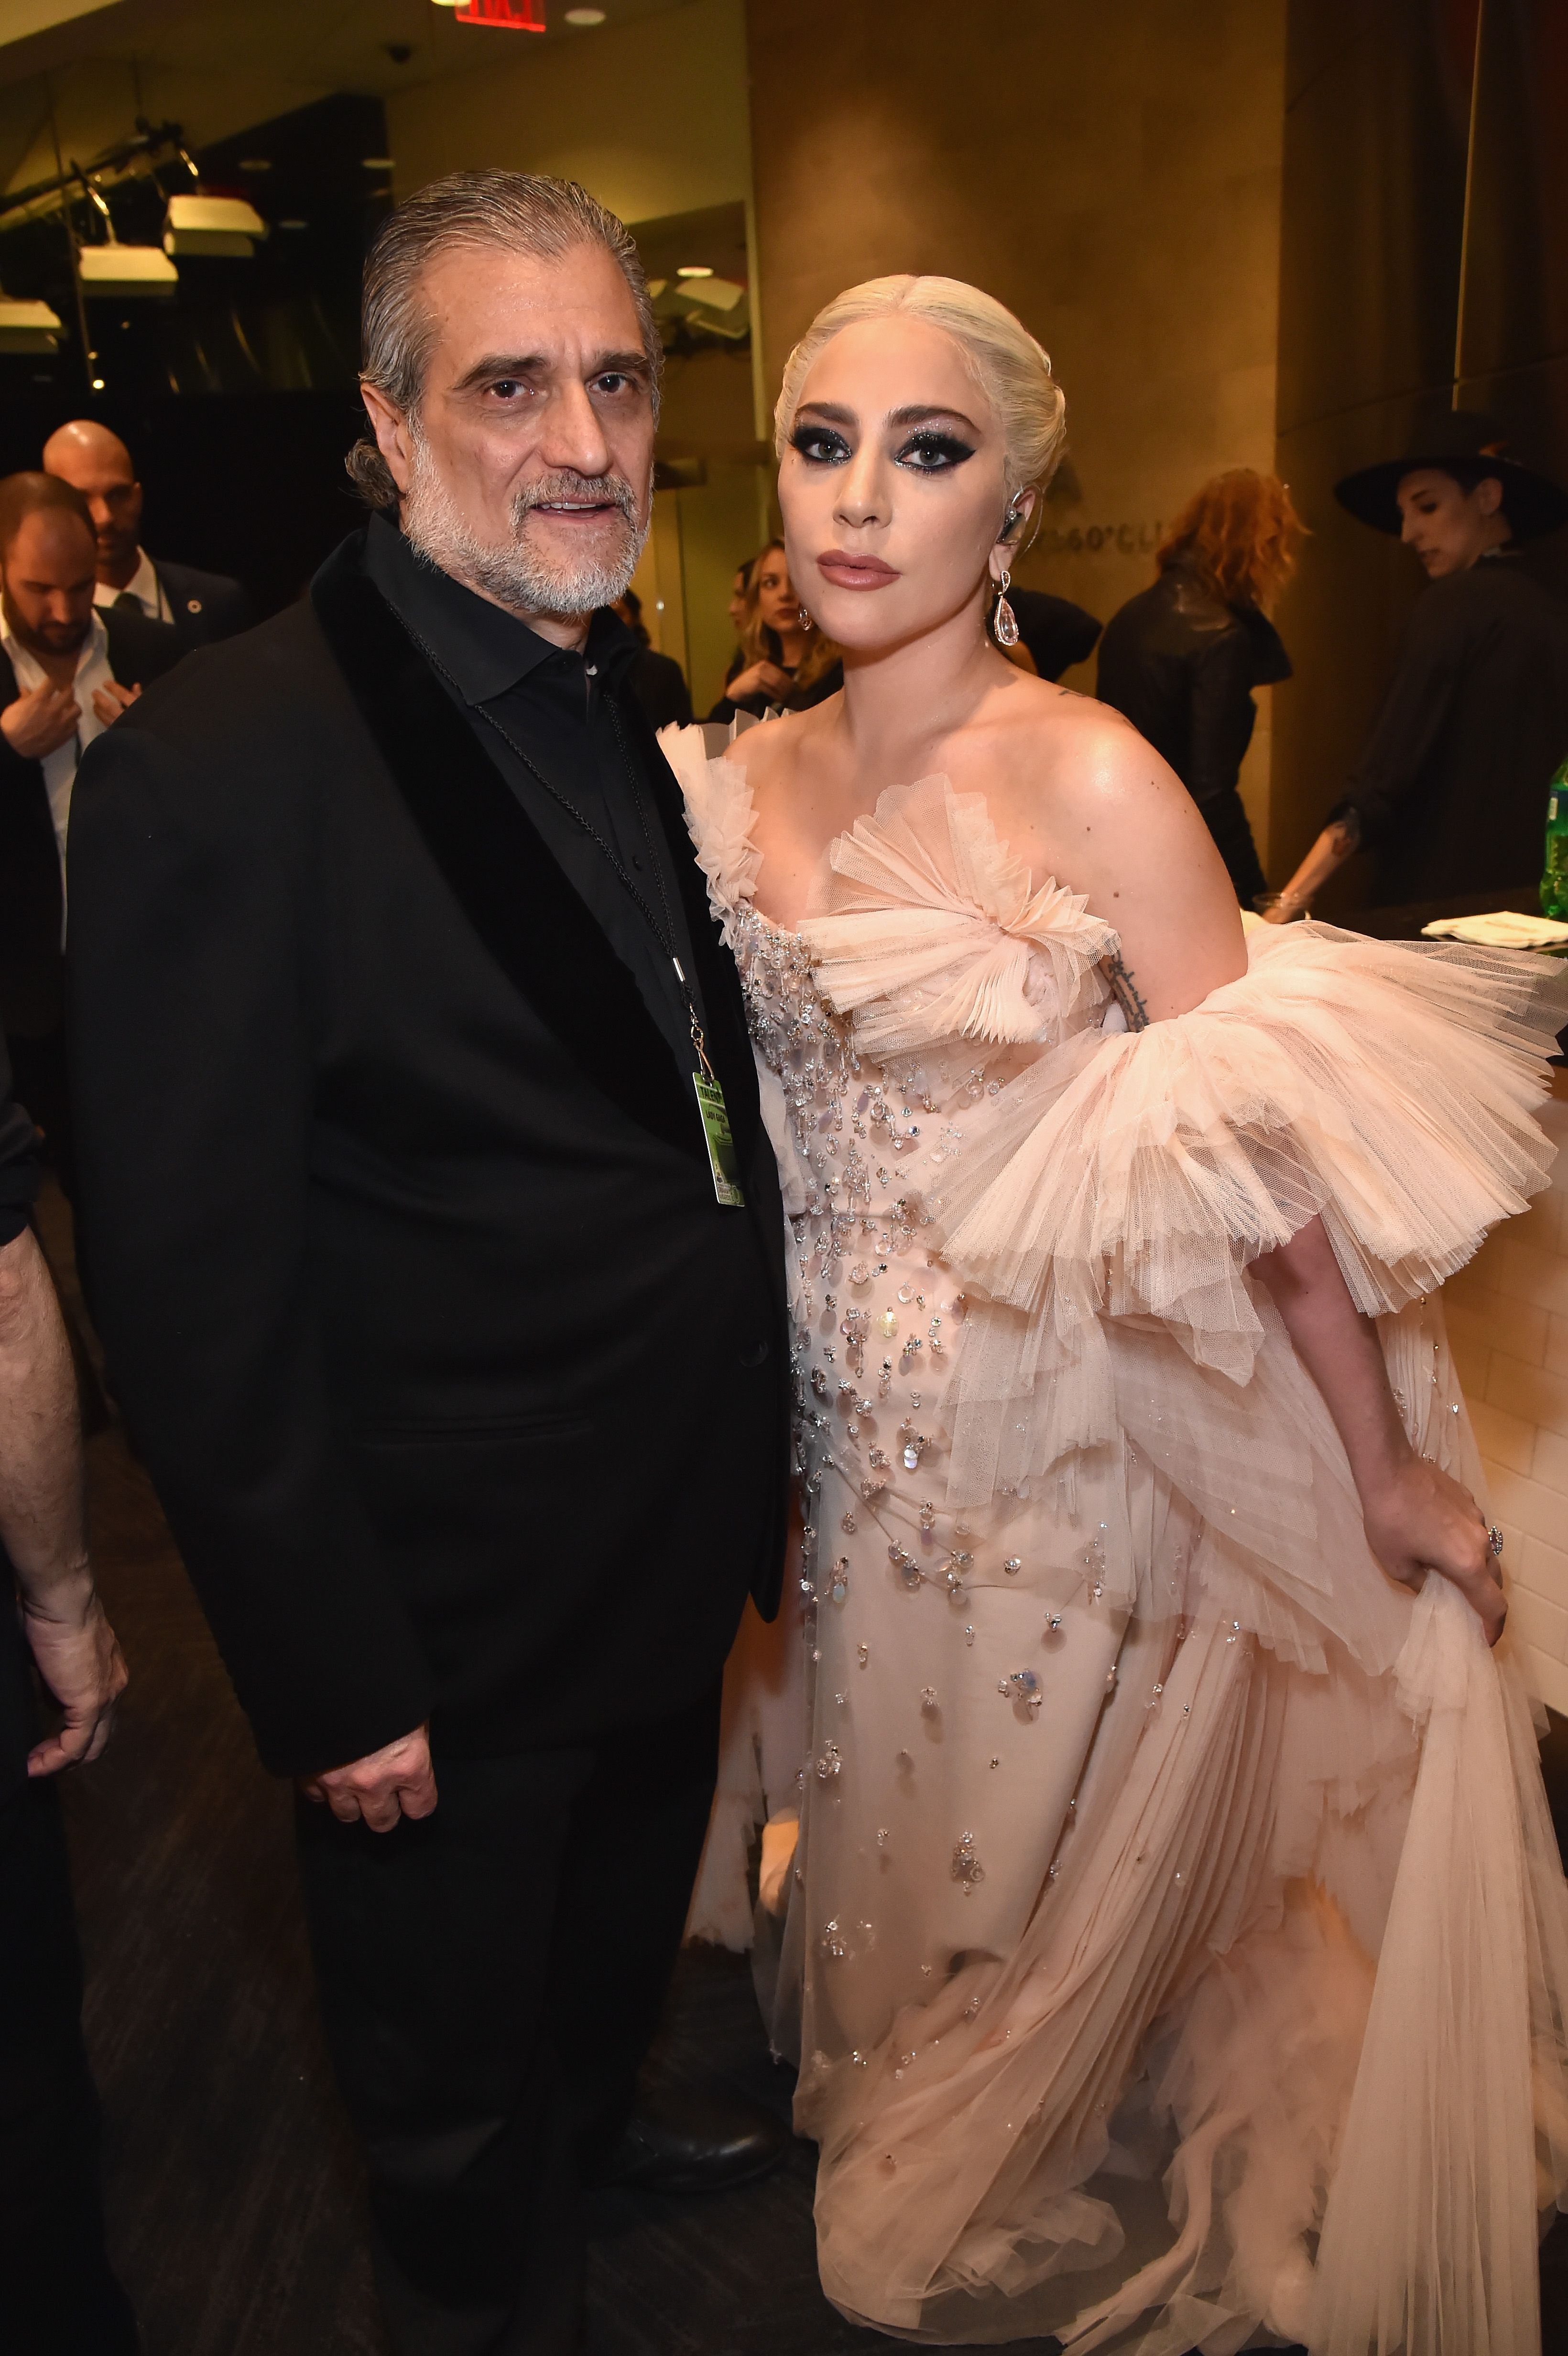 Lady Gaga's Dad Is Being Dragged After Asking People to Donate to His Restaurant